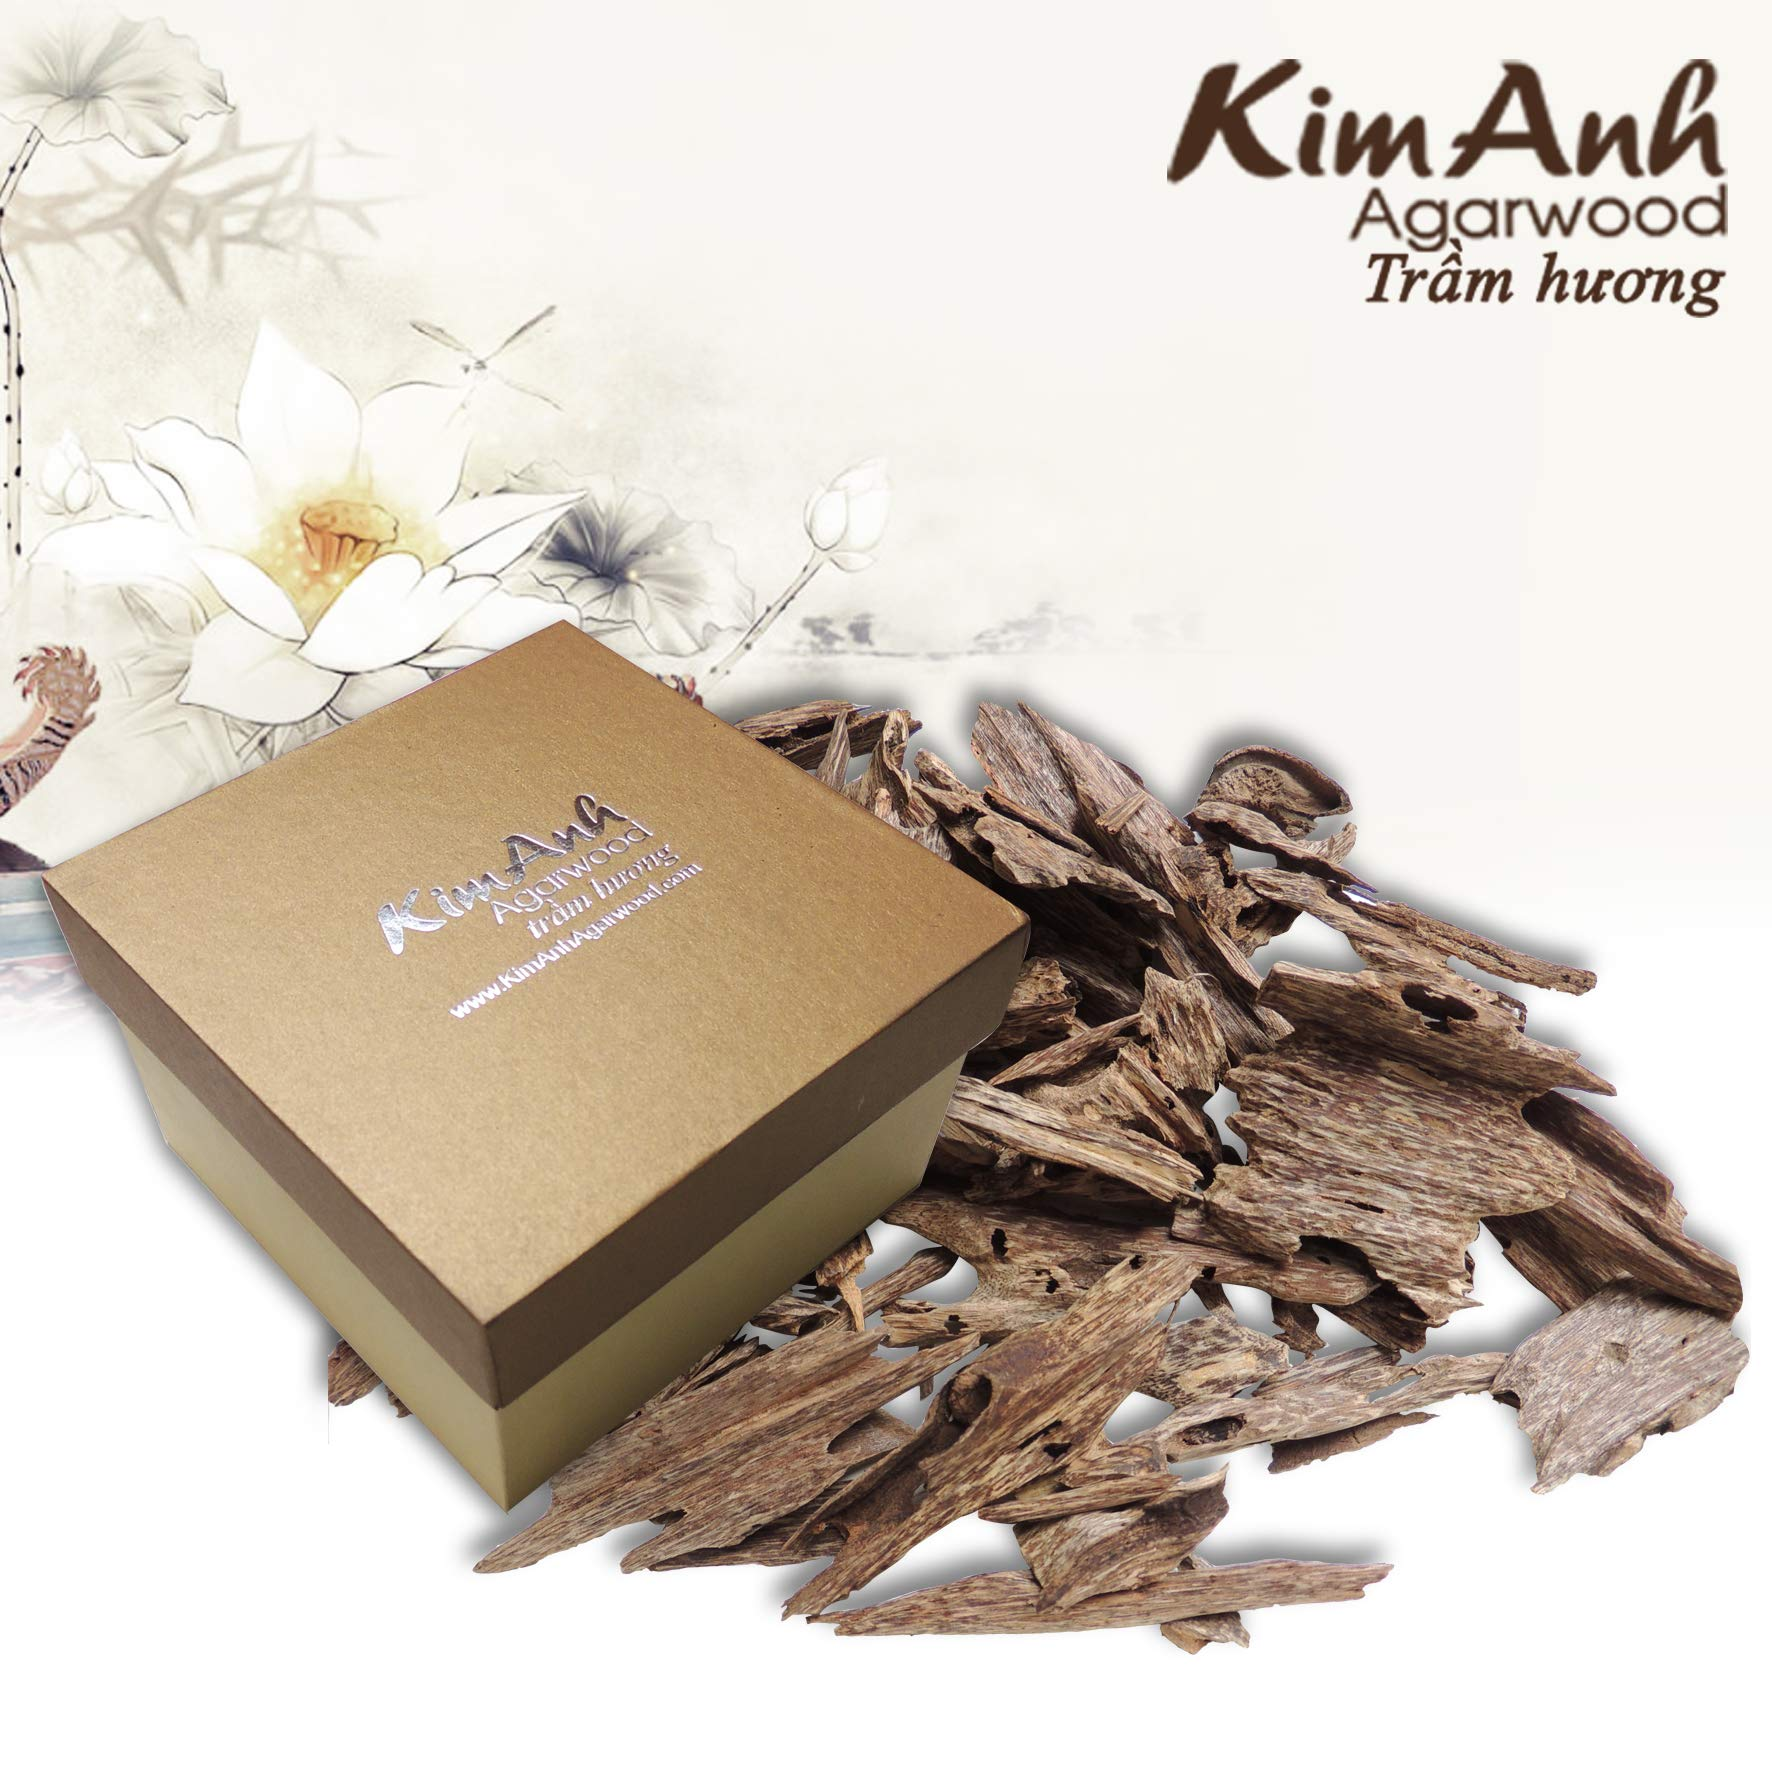 Kim Anh Agarwood chips - Vietnam natural agarwood chips - Pure high quality Agarwood Aloeswood chips - Oud wood chips - Oudh chips for - charcoal or electric incense burner- 30g by Kim Anh Agarwood (Image #3)